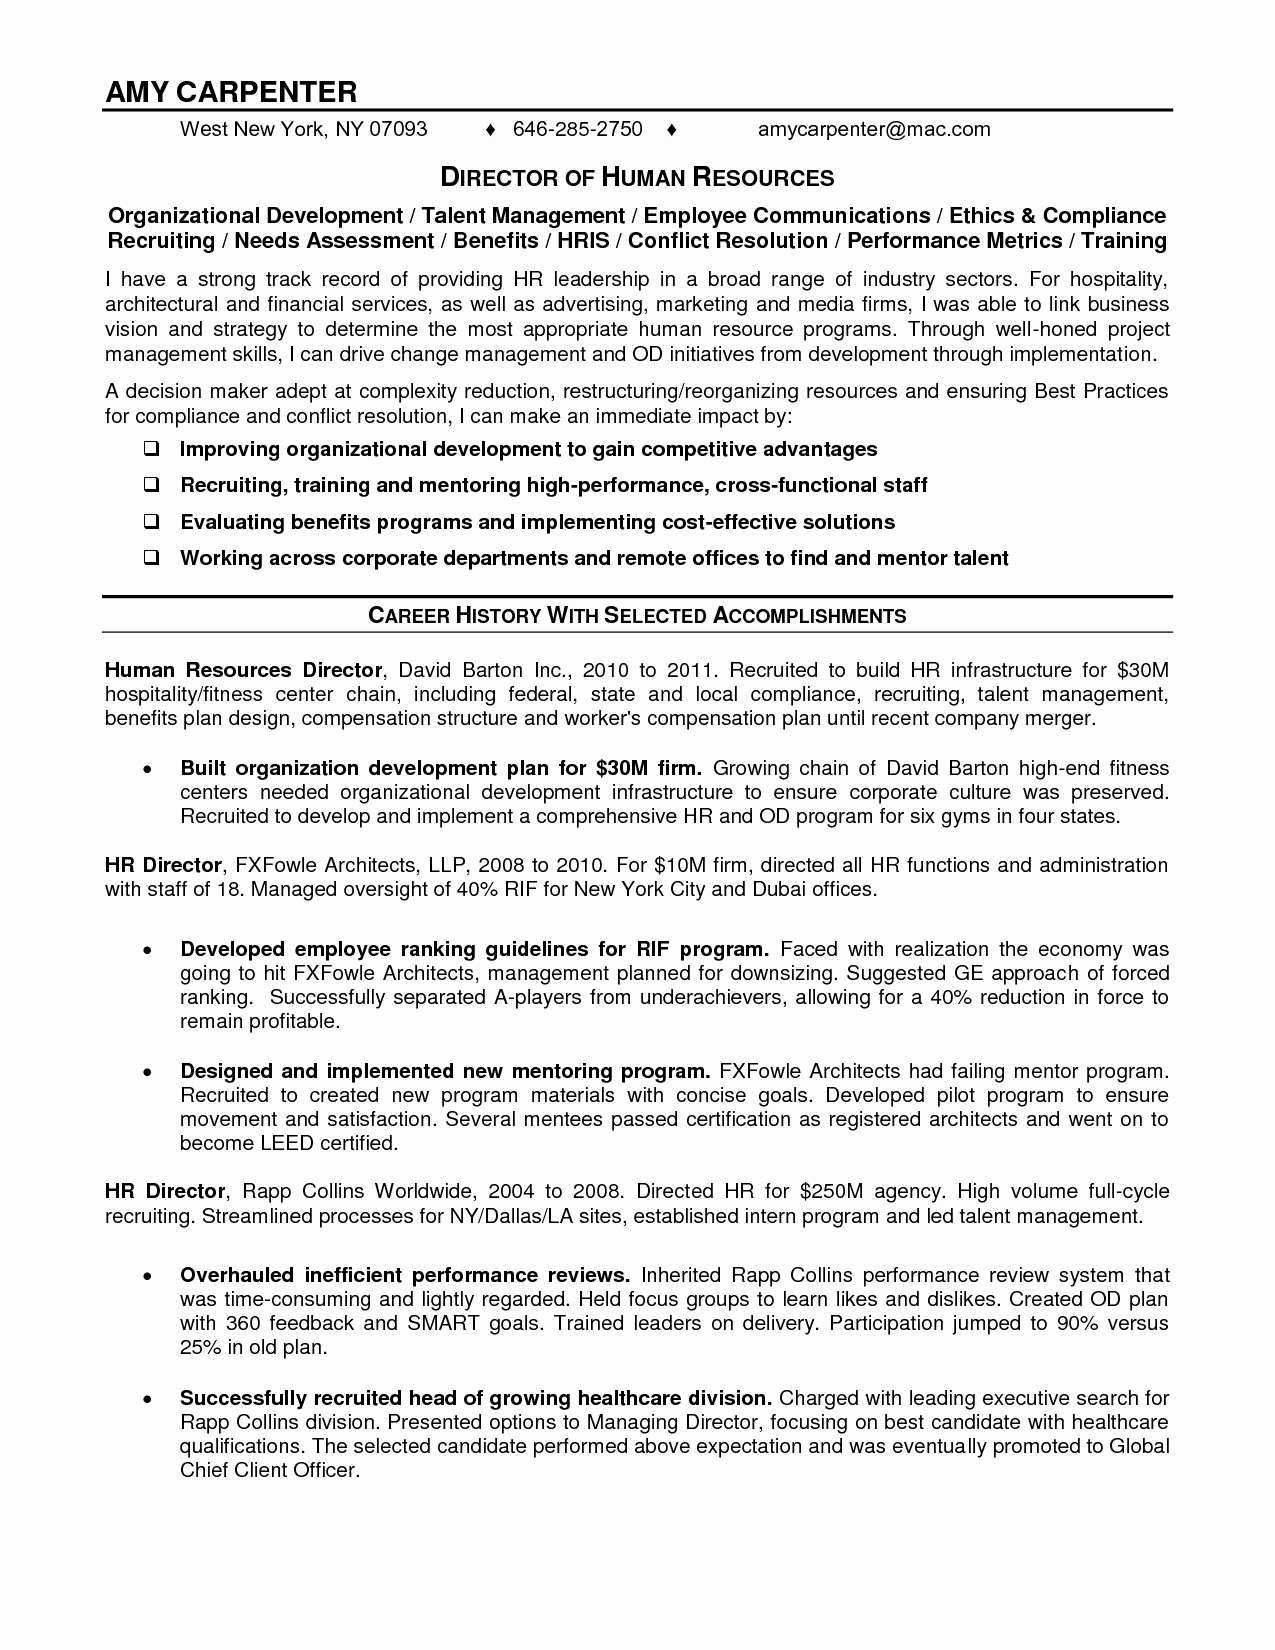 ross school of business resume template Collection-Mechanical Engineering Entry Level Resume Entry Level It Resume Unique Entry Level Technical Support Resume 1-q